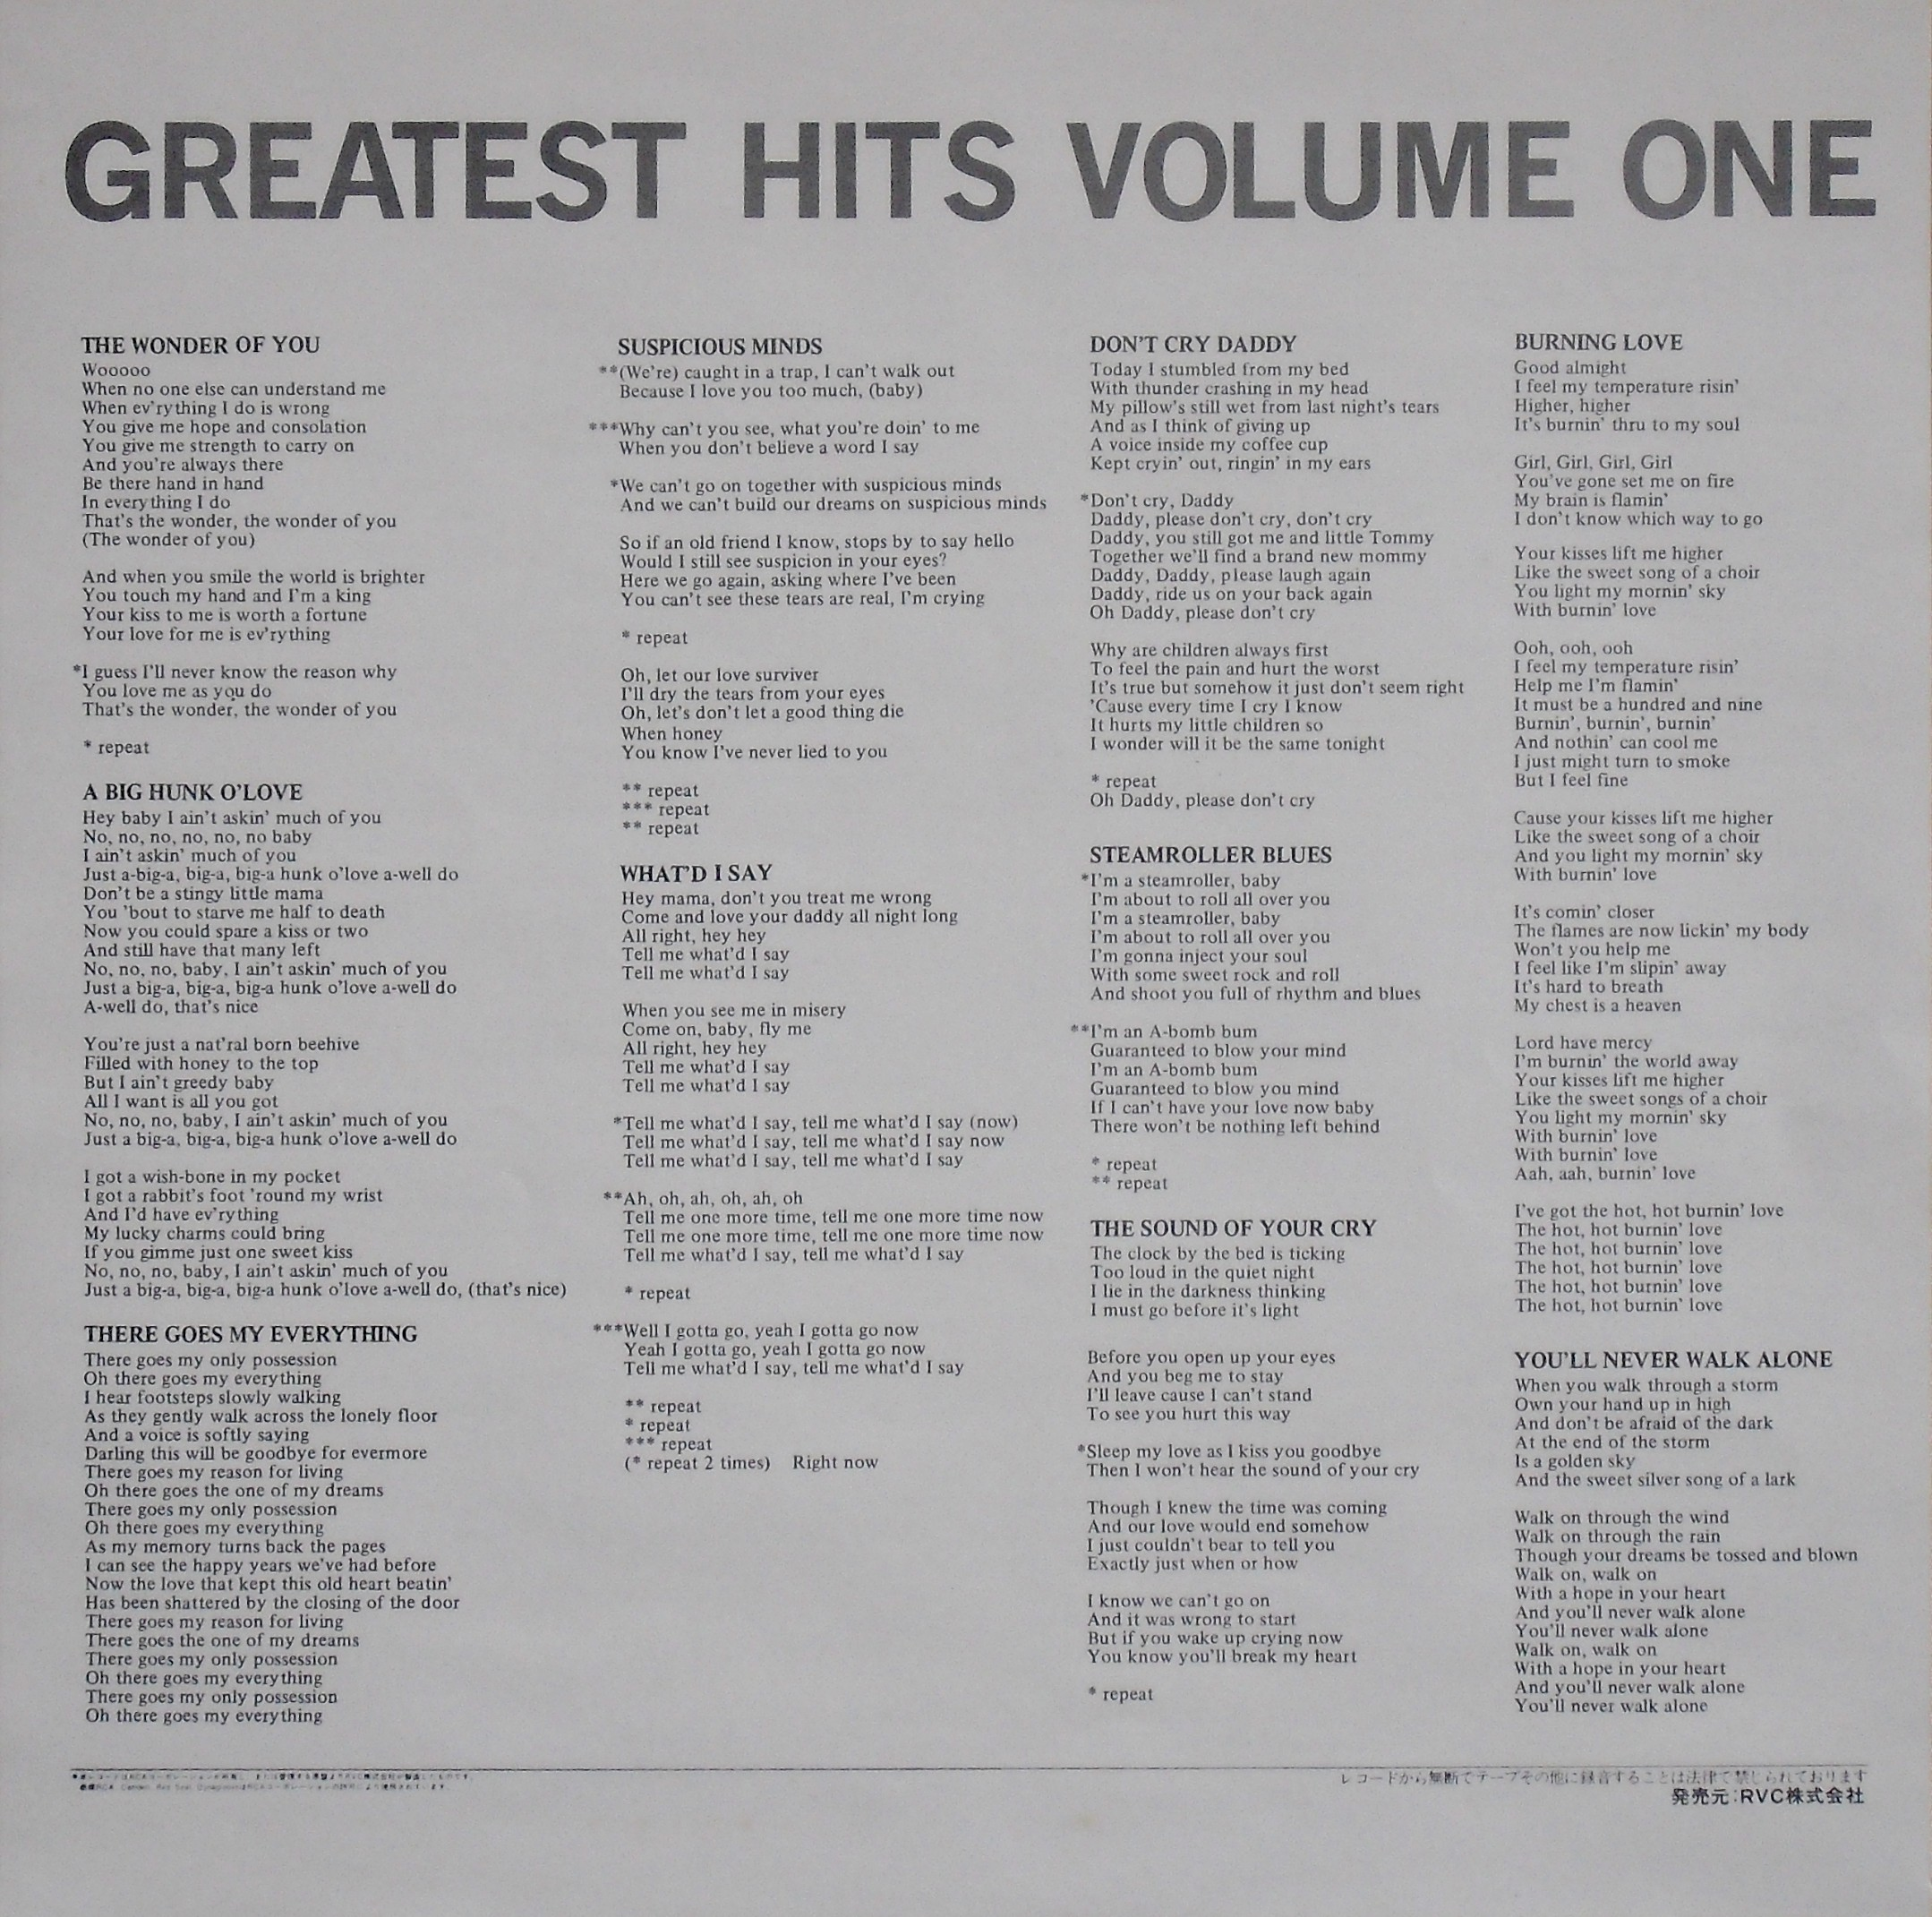 GREATEST HITS VOLUME ONE 03owzk6